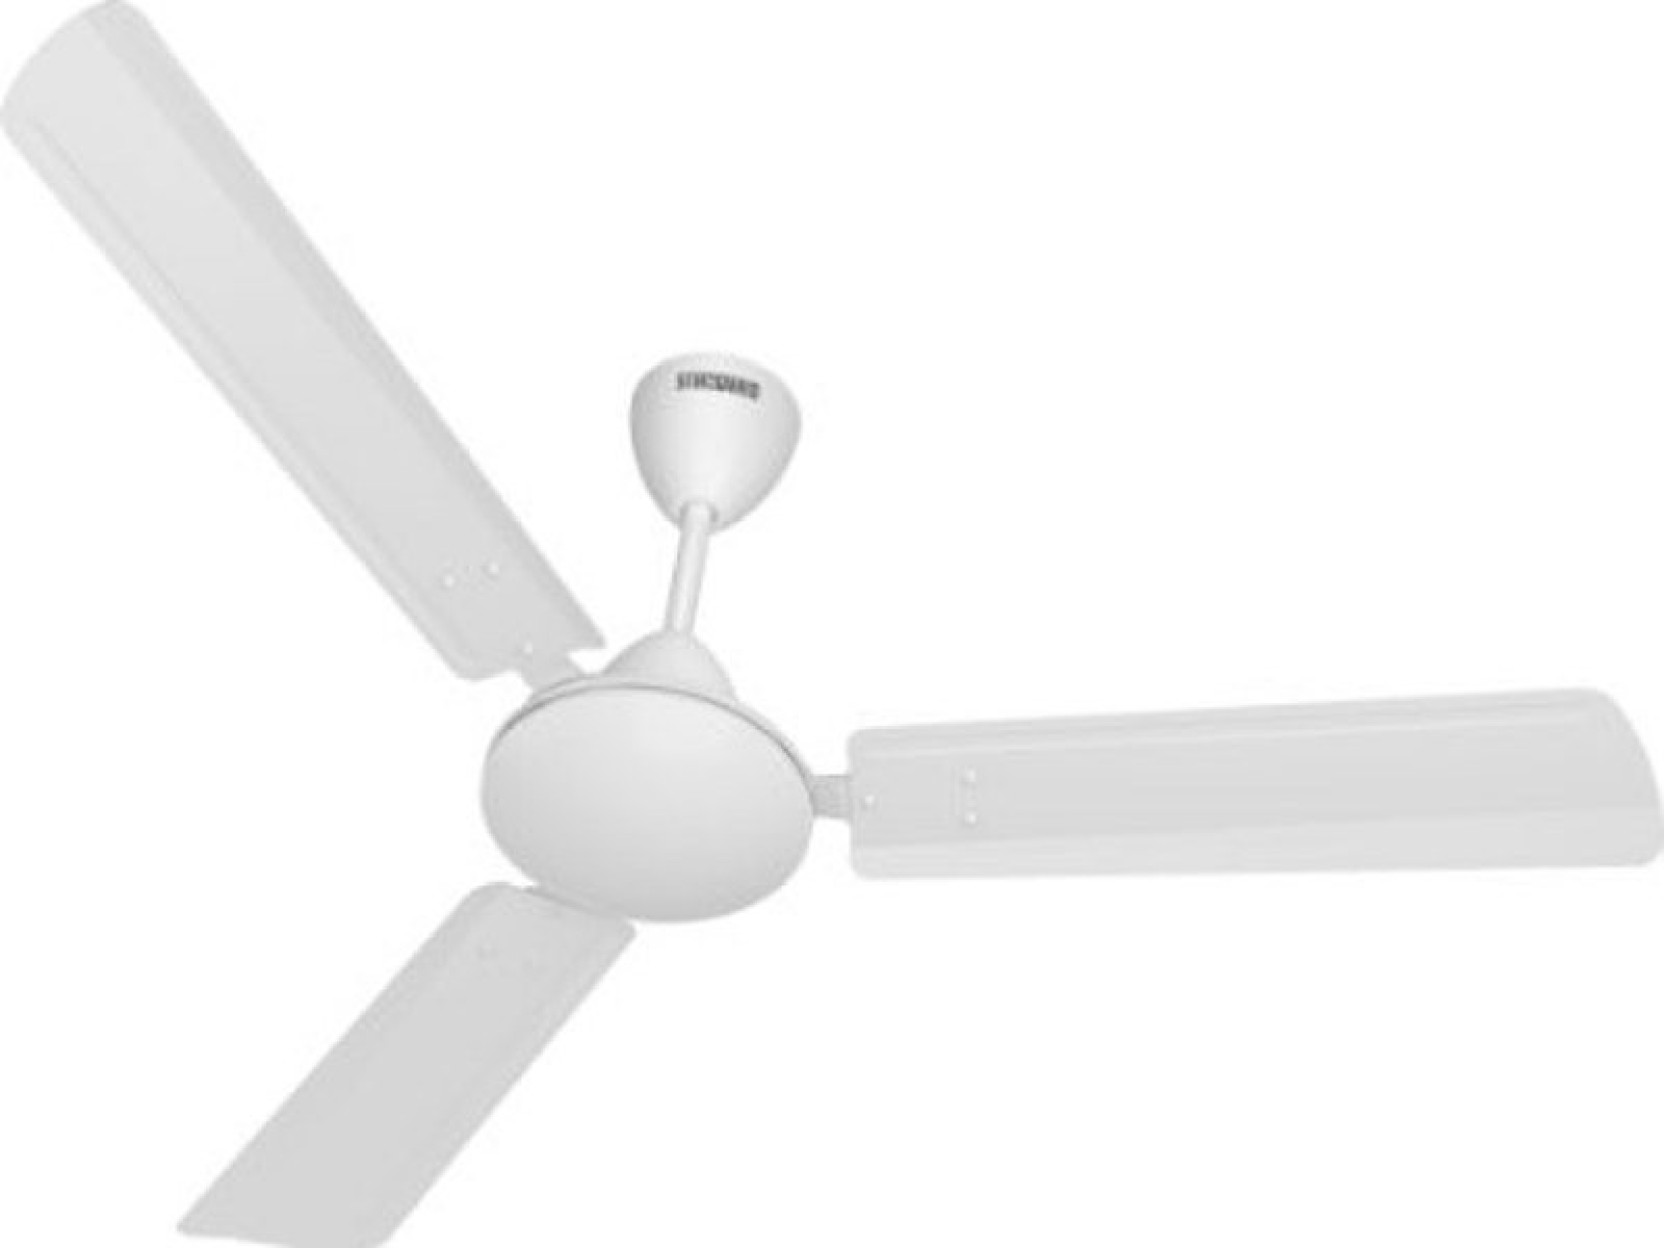 Havells Standard SS 50 3 Blade Ceiling Fan Price in India Buy